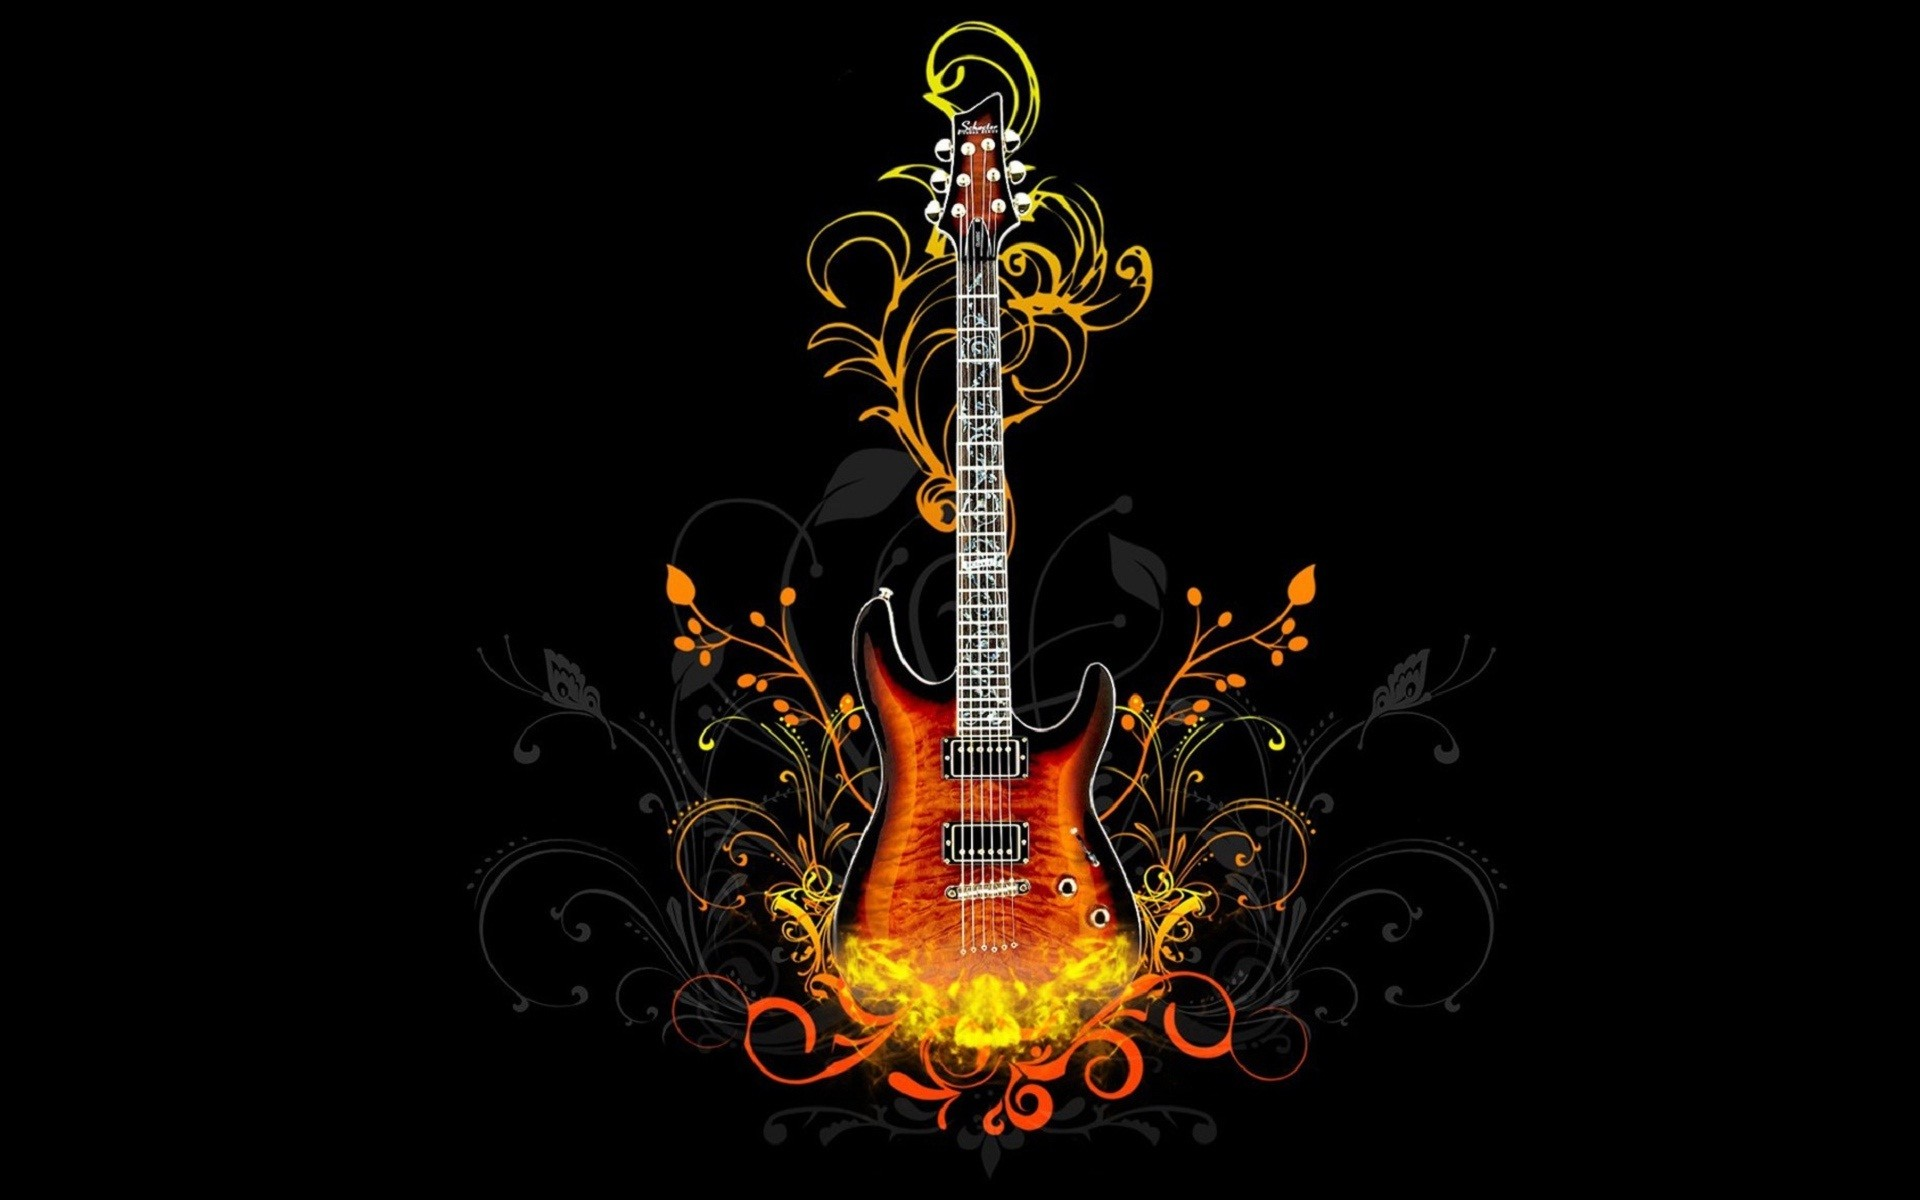 Res: 1920x1200, Flaming Skull With Guitar Wallpaper Hd